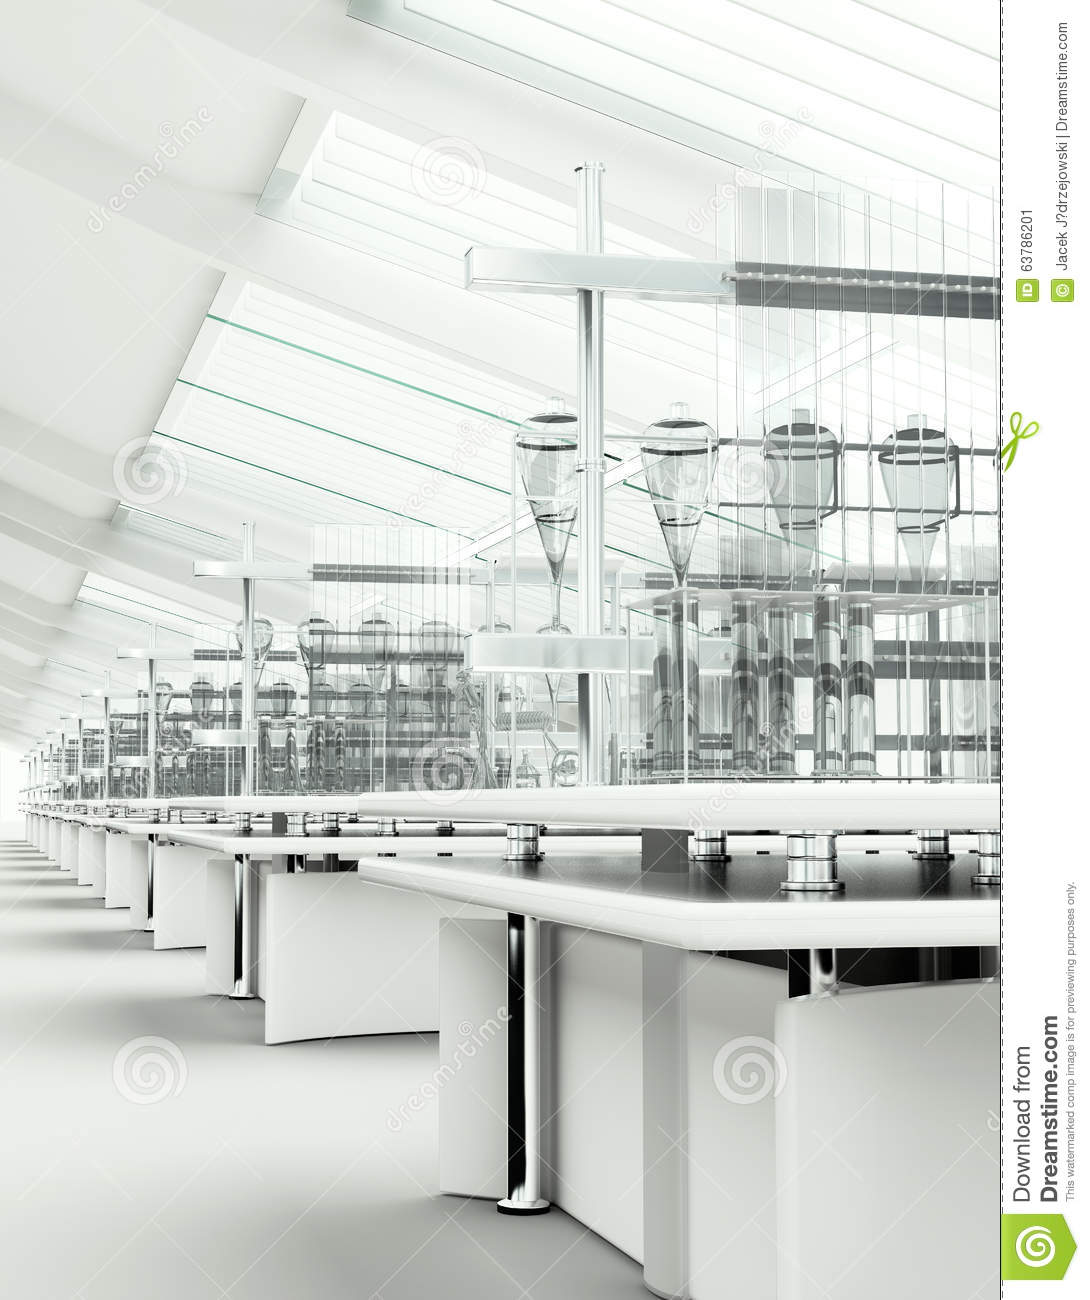 Clean modern white laboratory interior stock image image for Research interior decoration and design influences